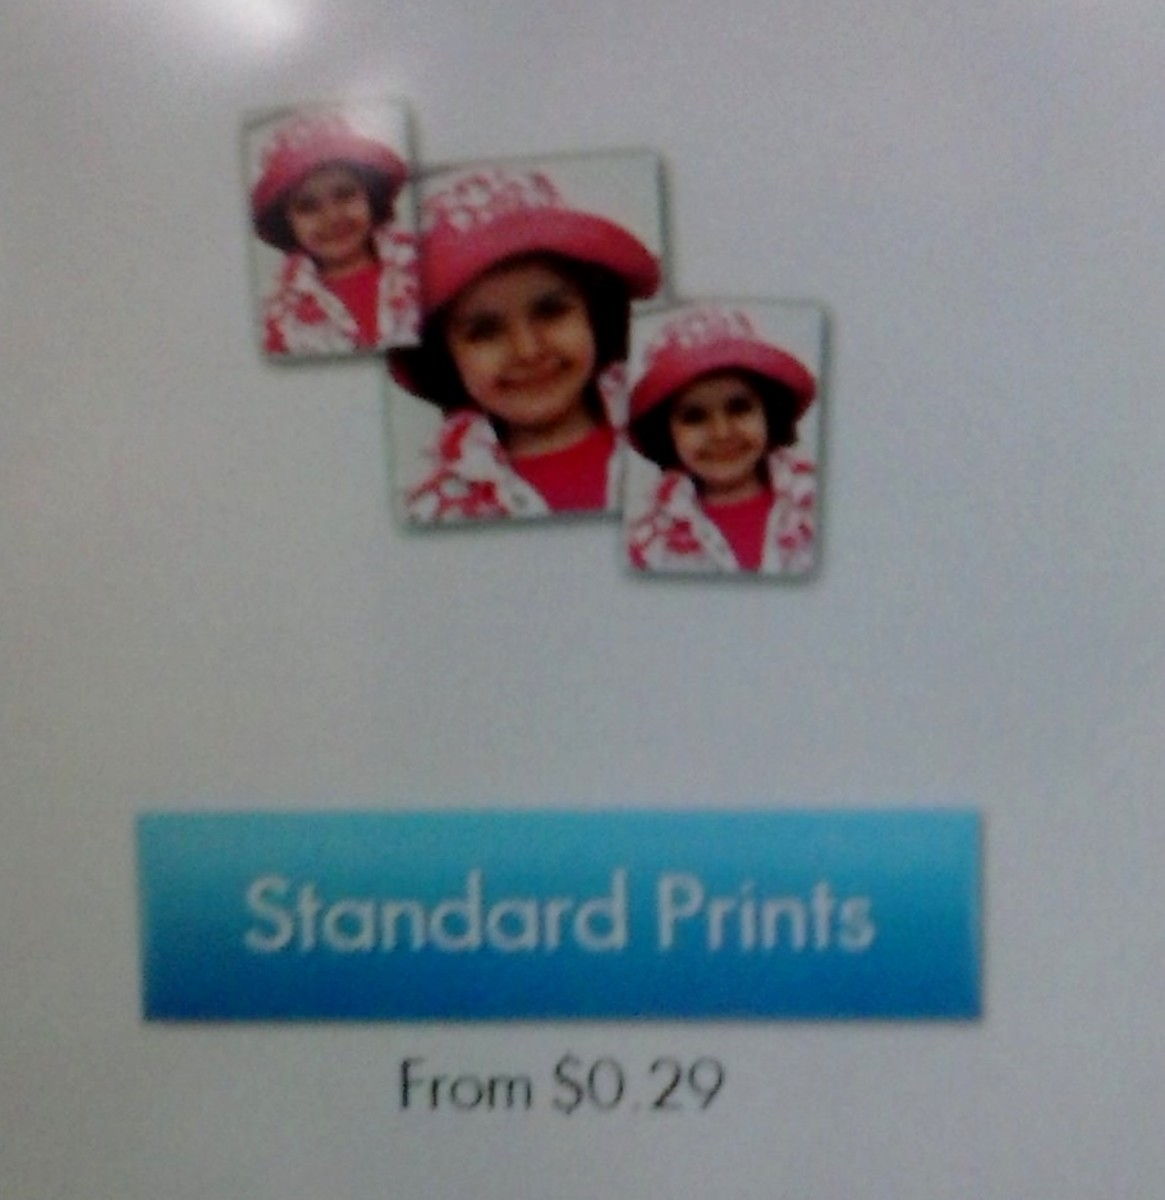 Choose the Standard Print Option. It's the cheapest option and they look great!